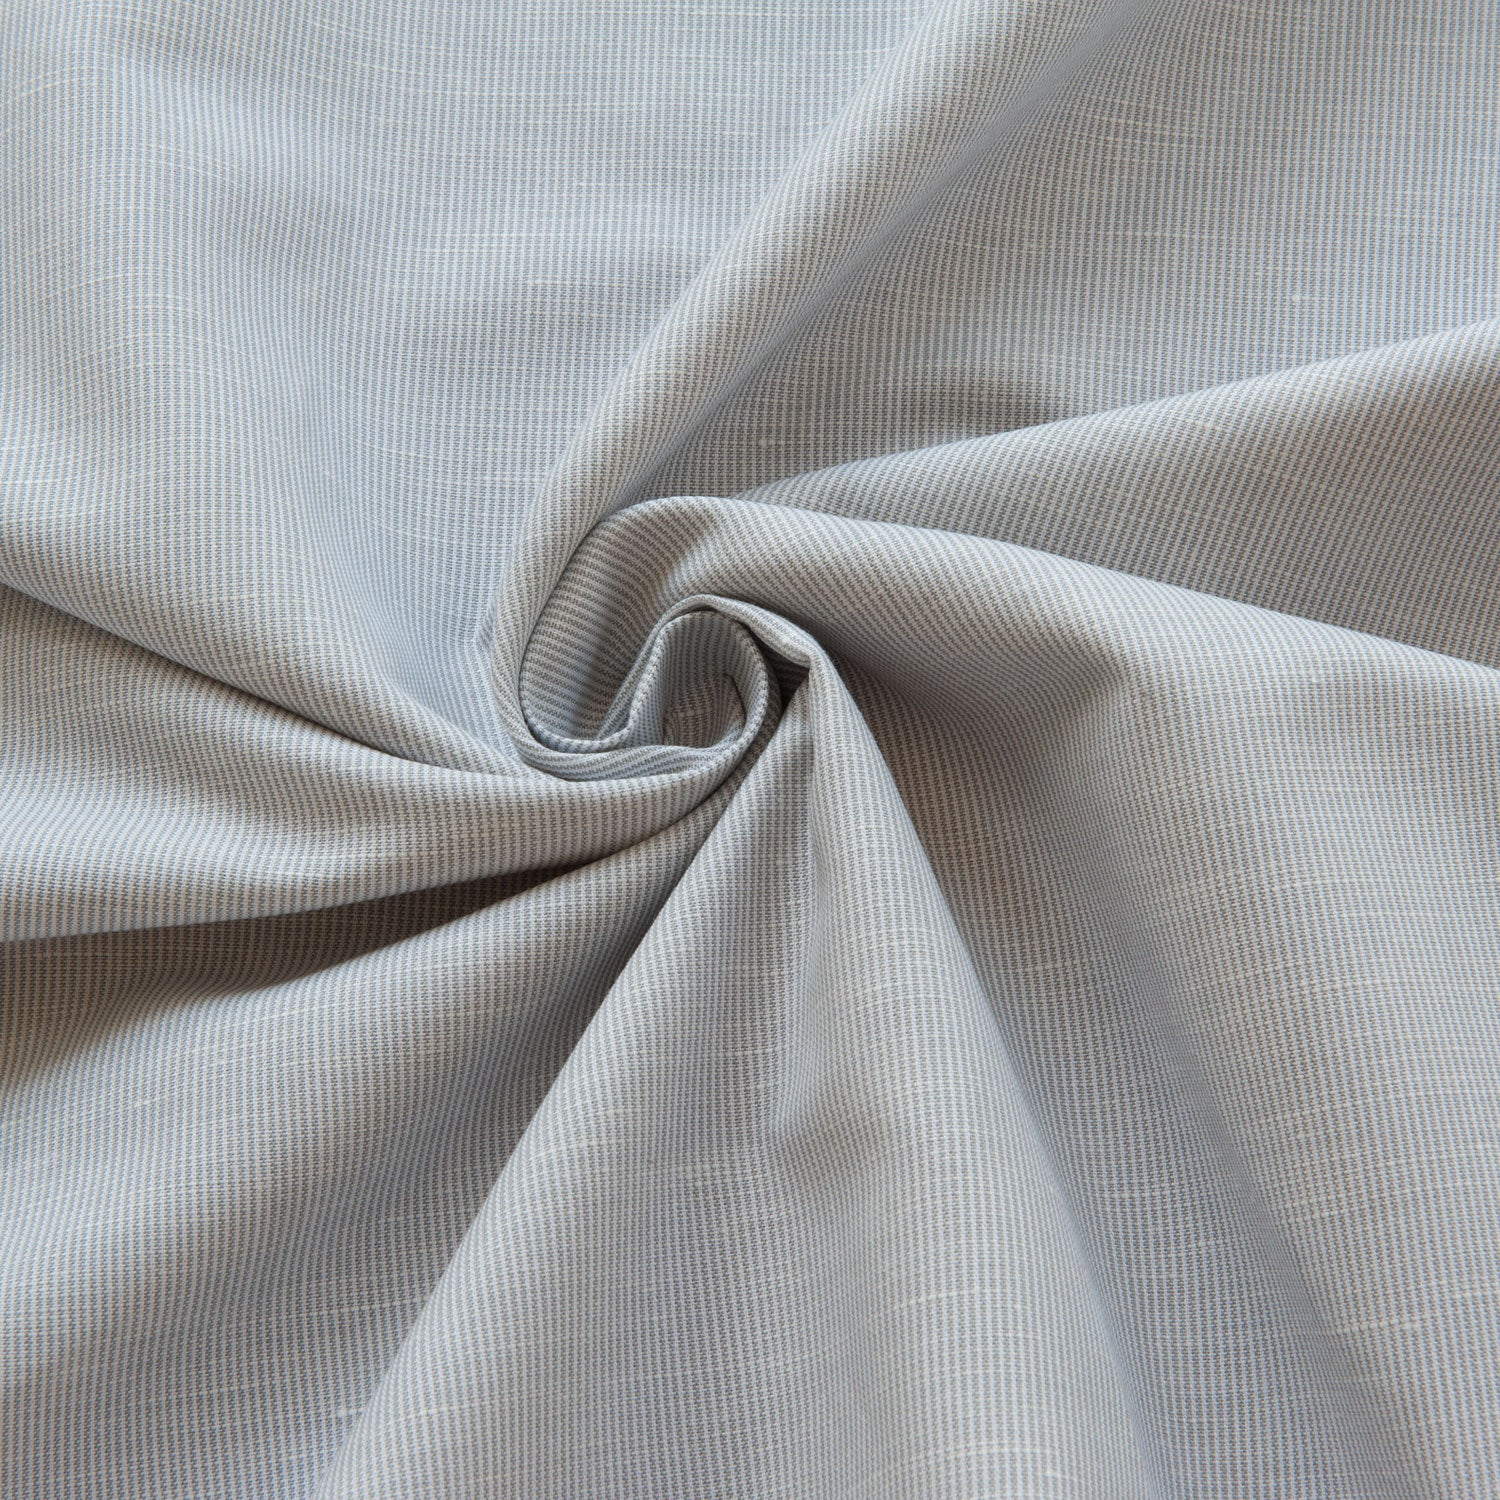 Grey Striped Linen Cotton - 1.8m Piece